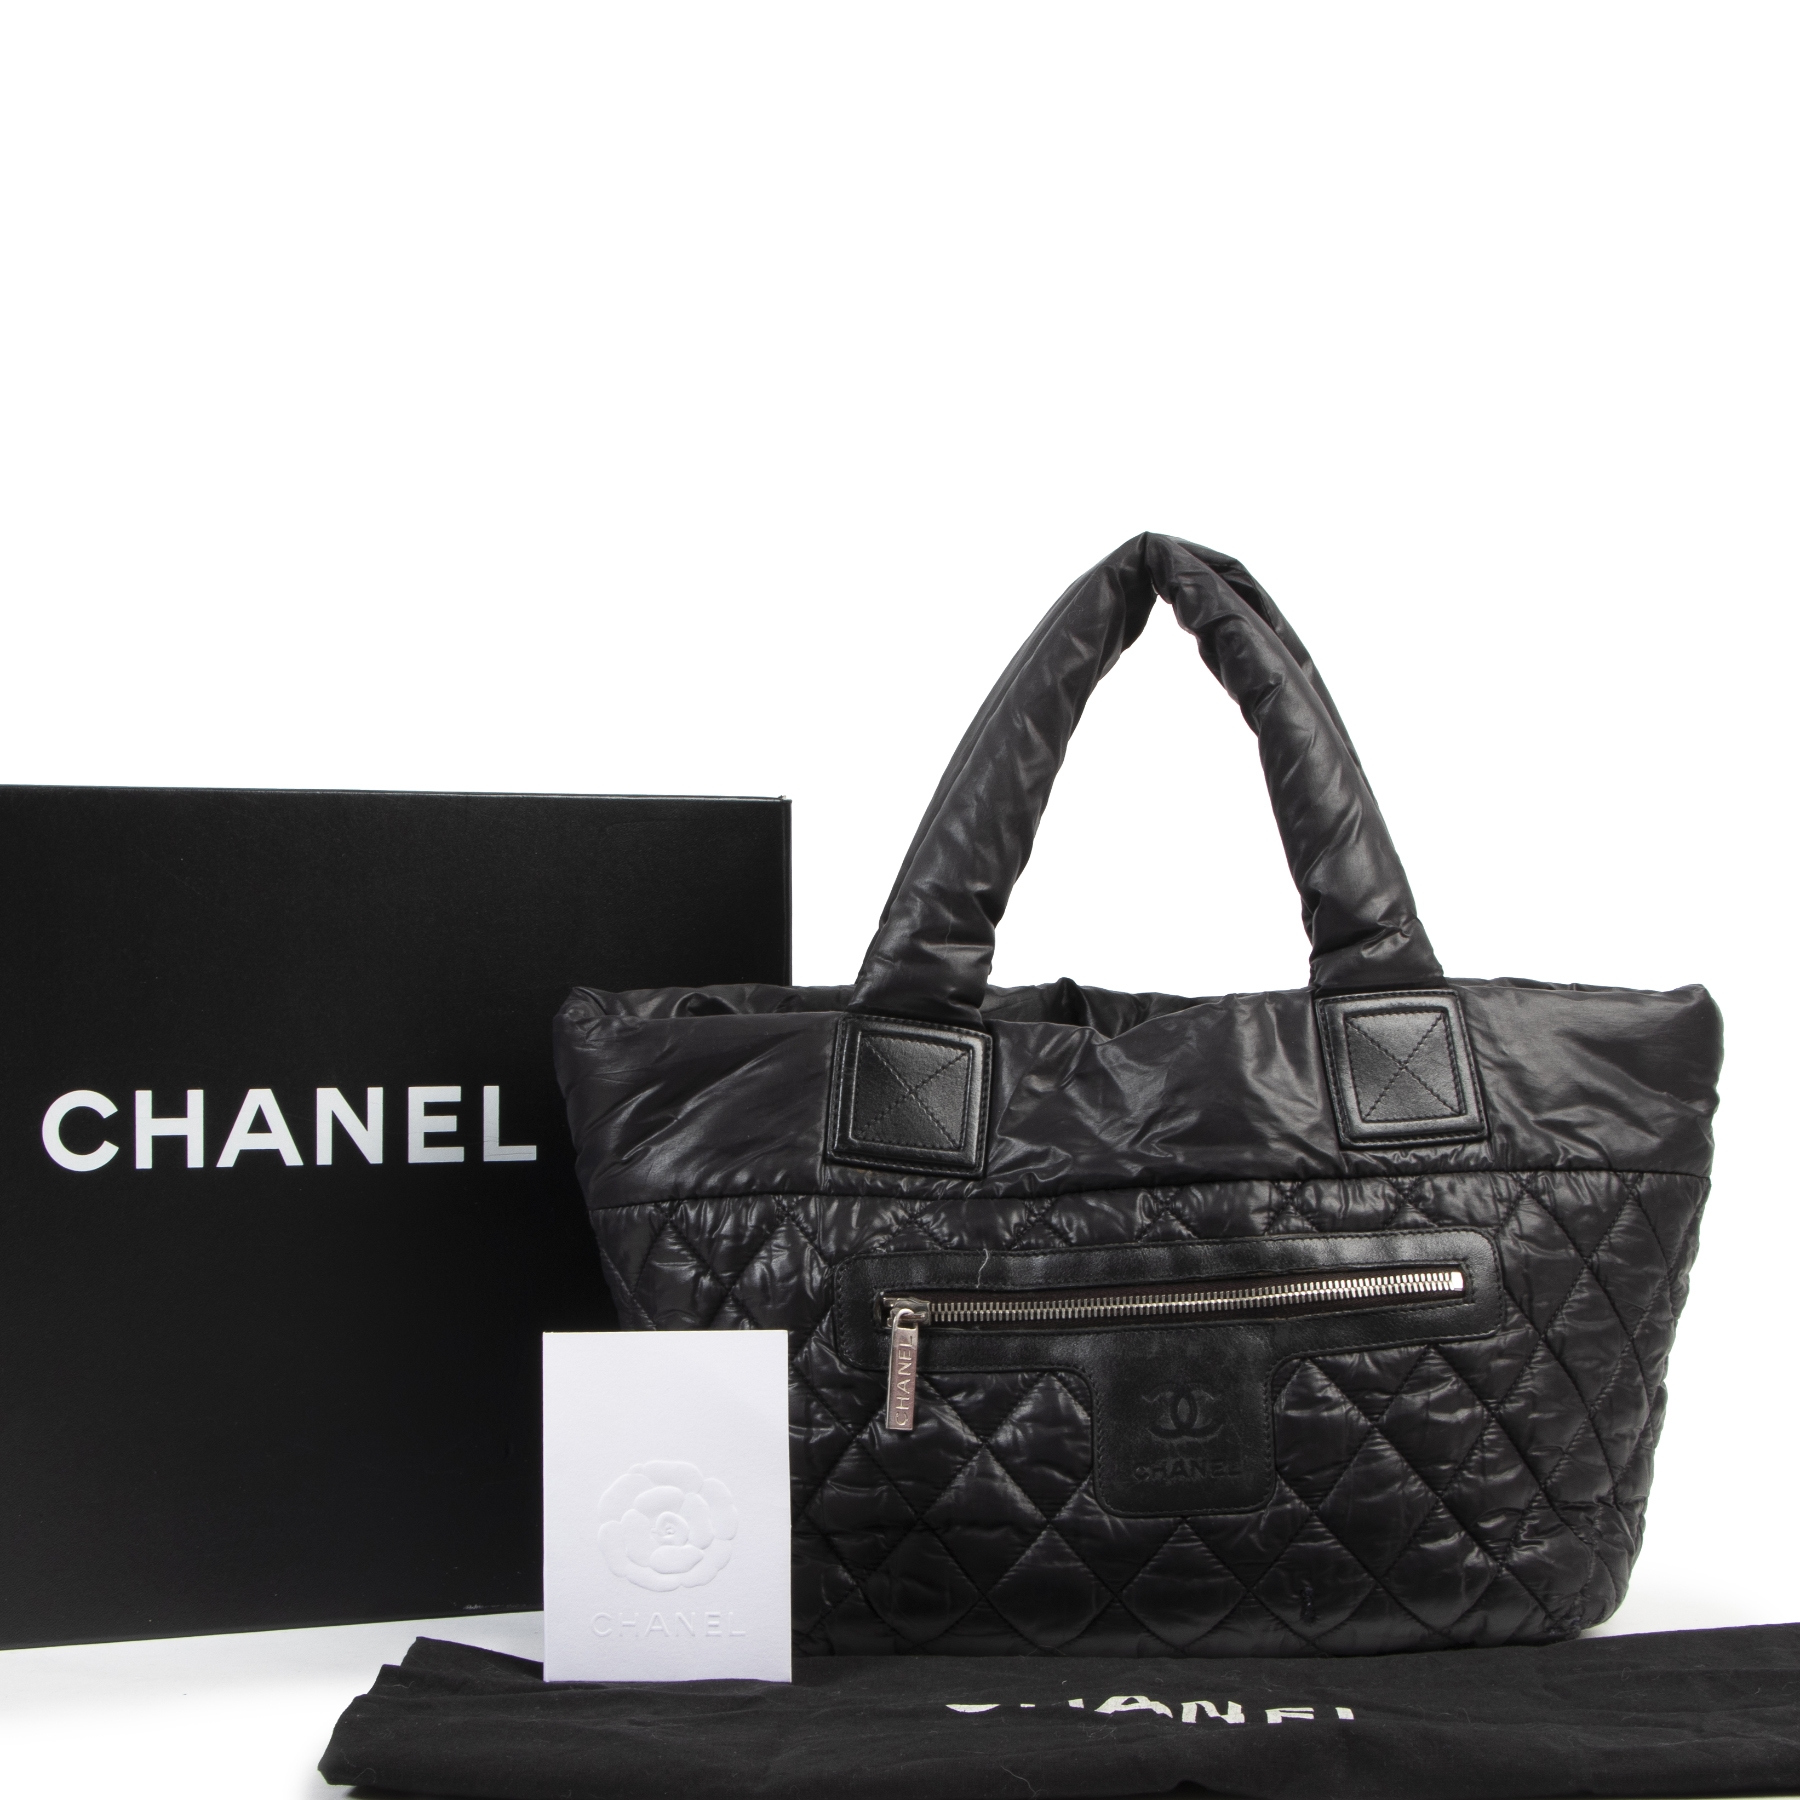 Authentic secondhand Chanel Black Quilted Cocoon Bag designer bags fashion luxury vintage webshop safe secure online shopping